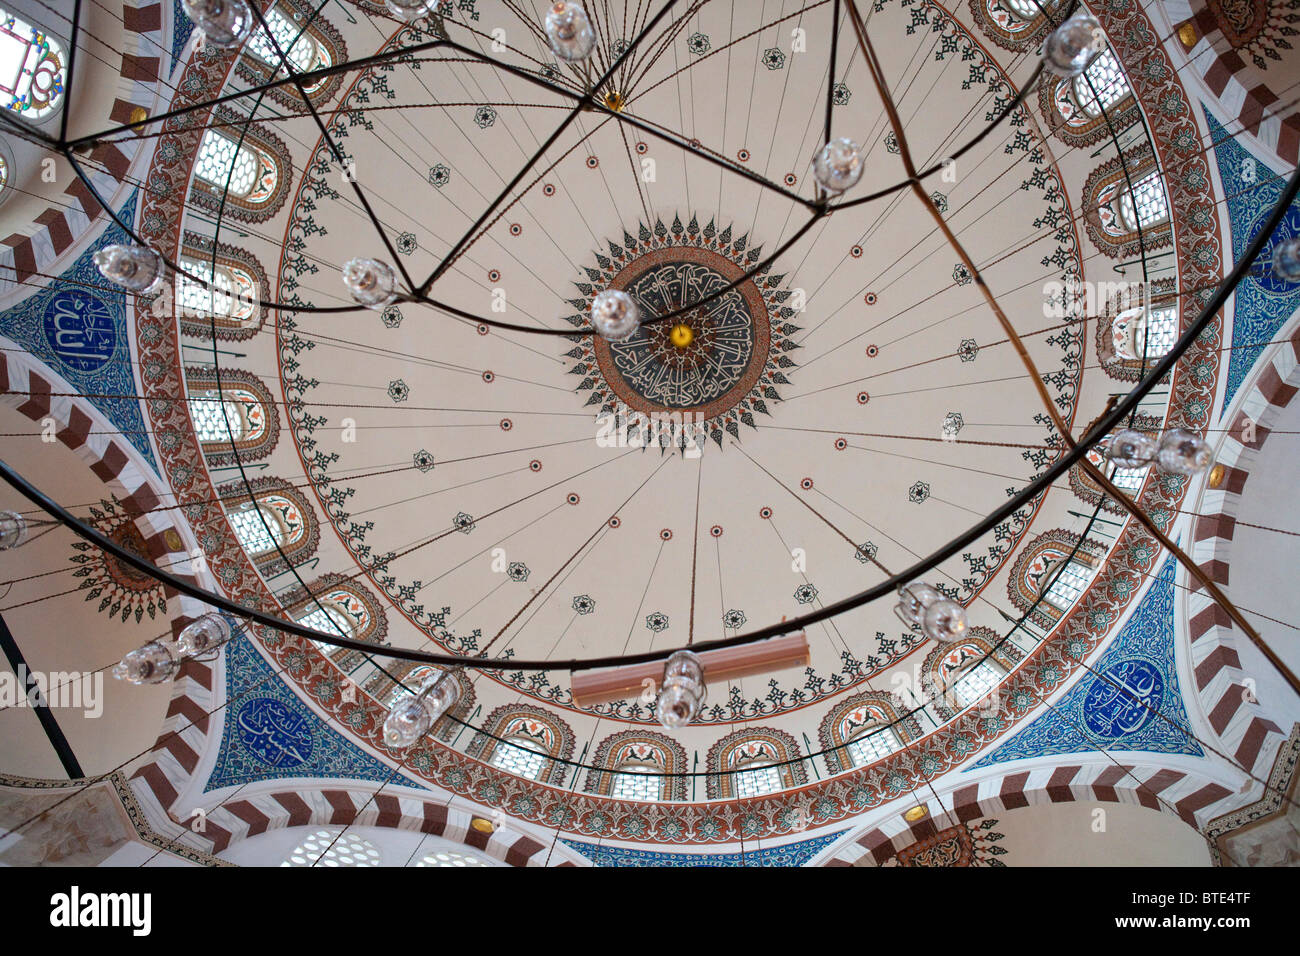 Yeni Mosque Istanbul Turkey Blue Ceramic Tiles Interior Dome